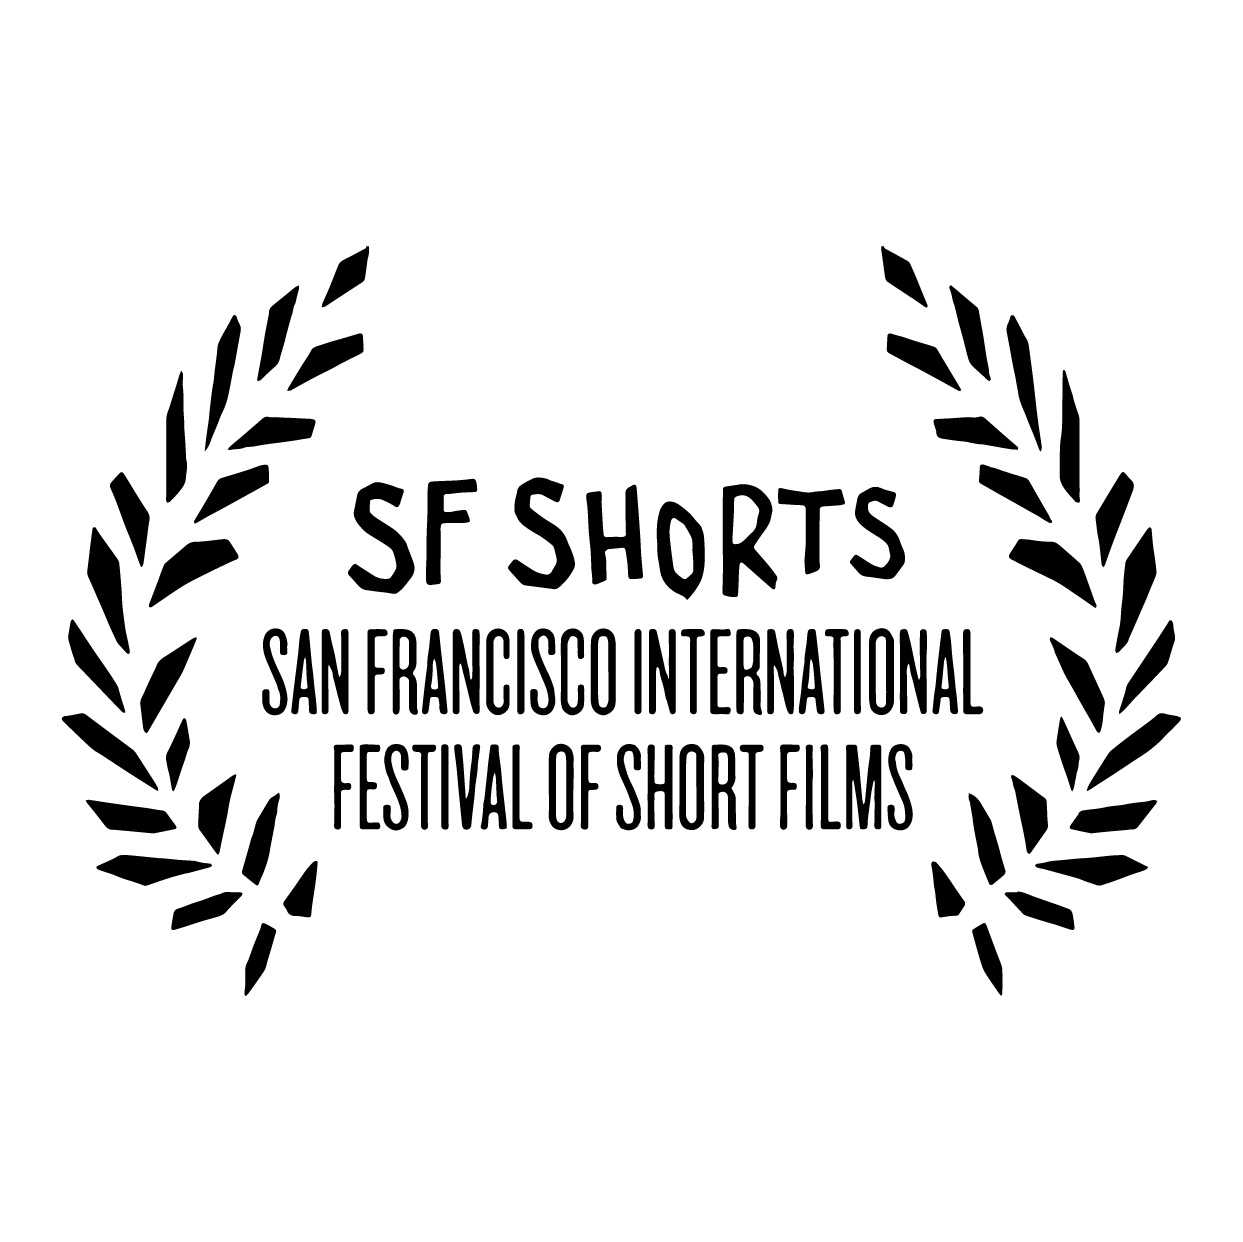 SF SHORTS, nominated